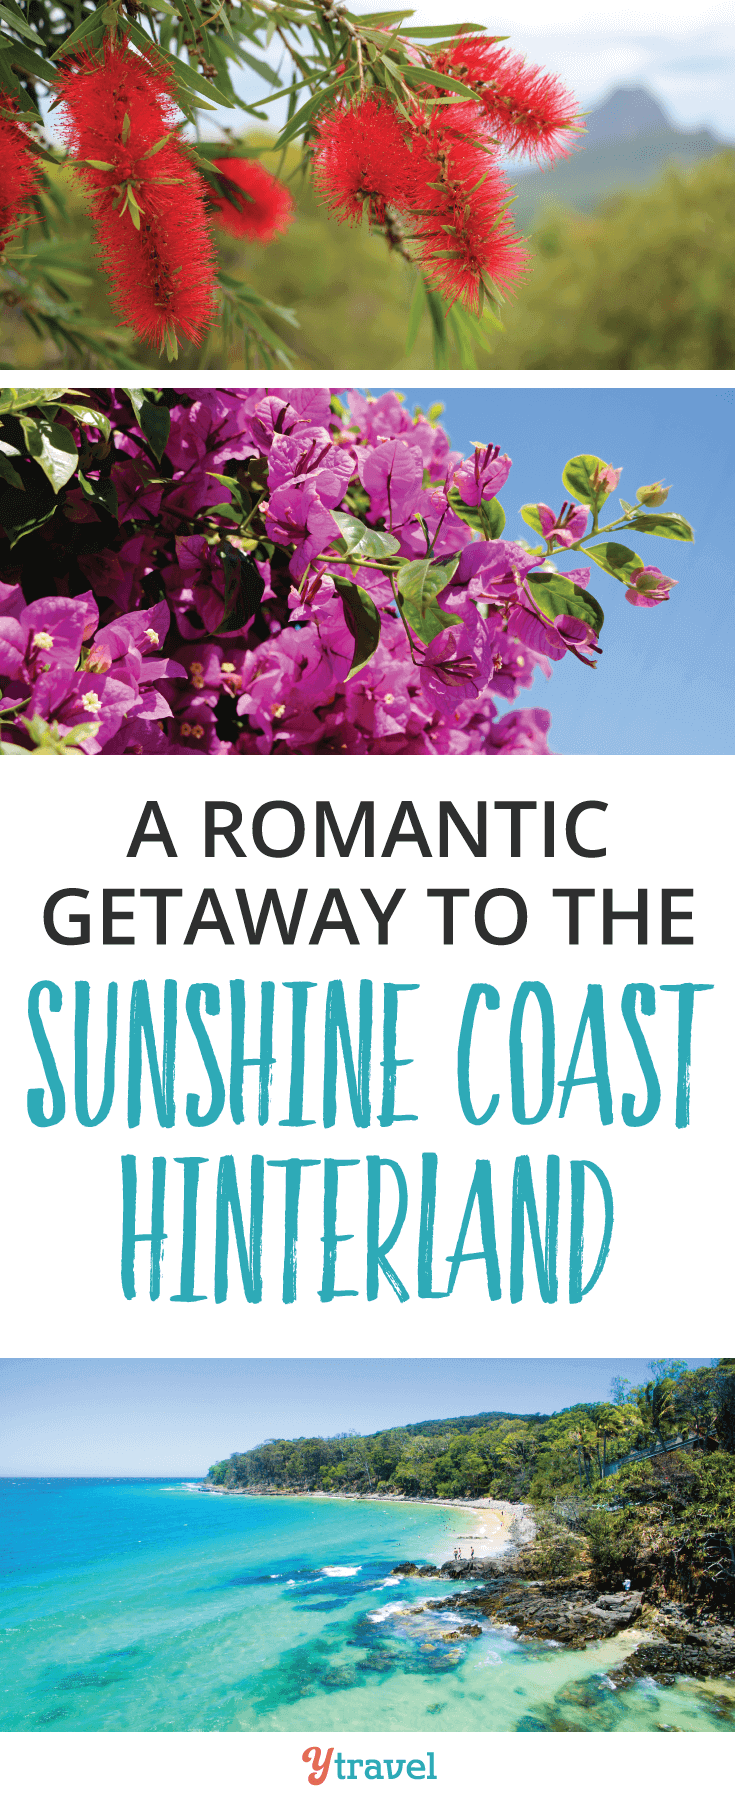 If you're looking for the perfect romantic getaway look no further than the Sunshine Coast Hinterland. Connect with nature, treat yourself to a massage, a lovely lunch and beautiful mountain views!